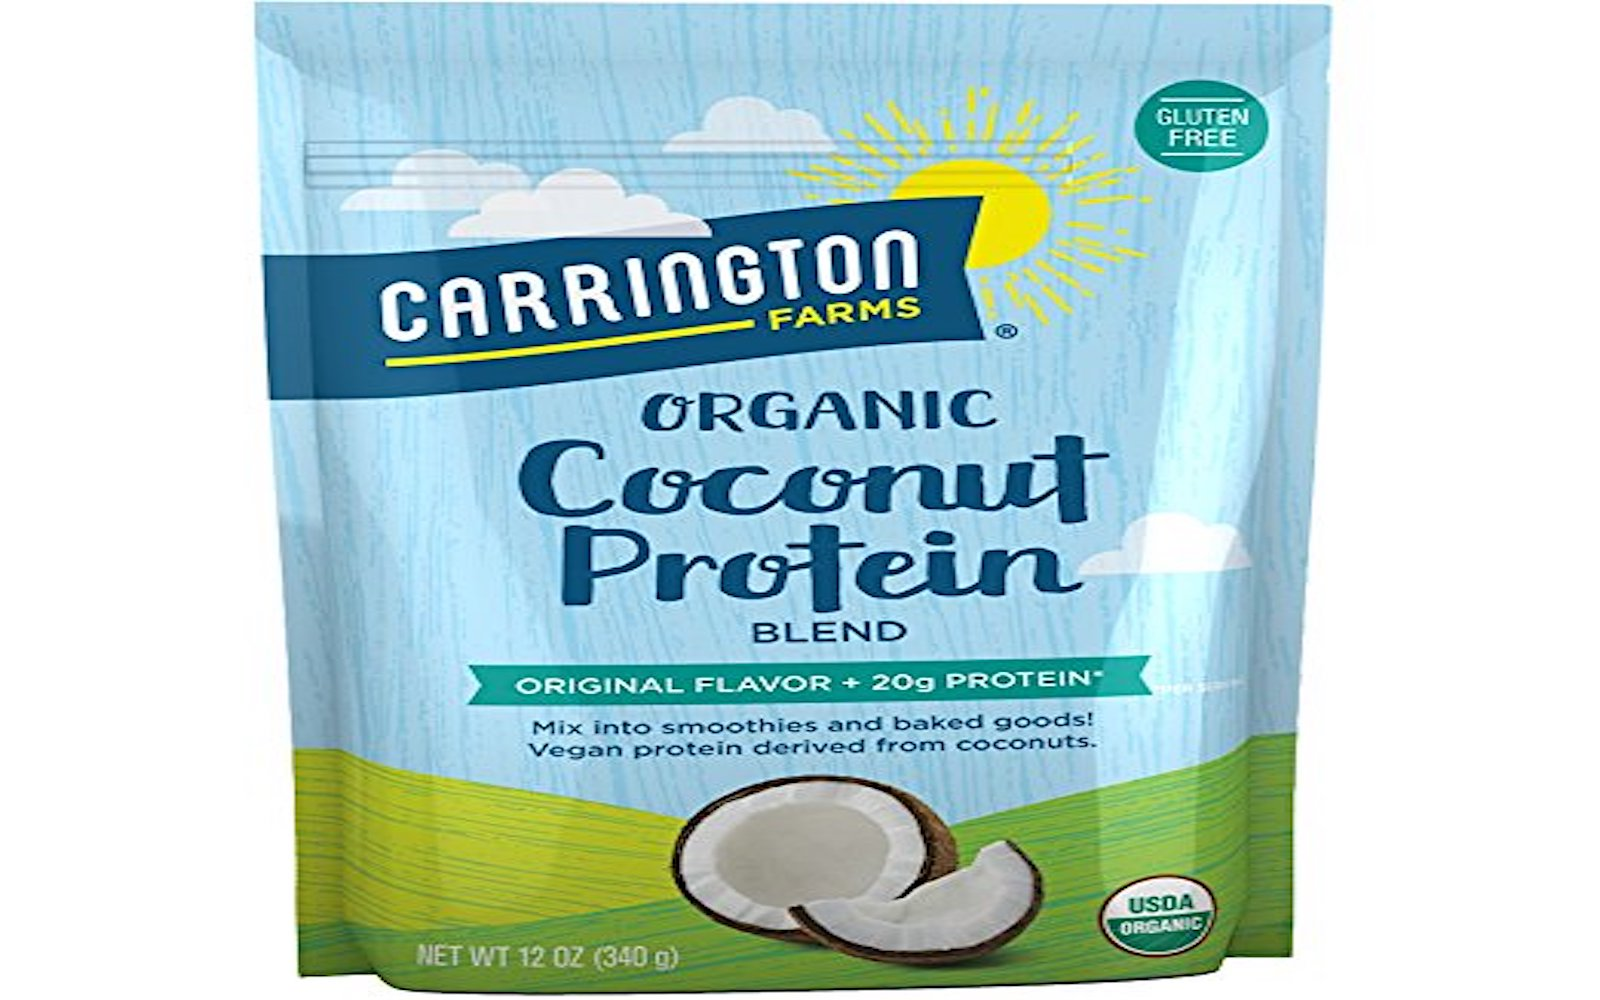 Carrington Farms Organic Coconut Protein